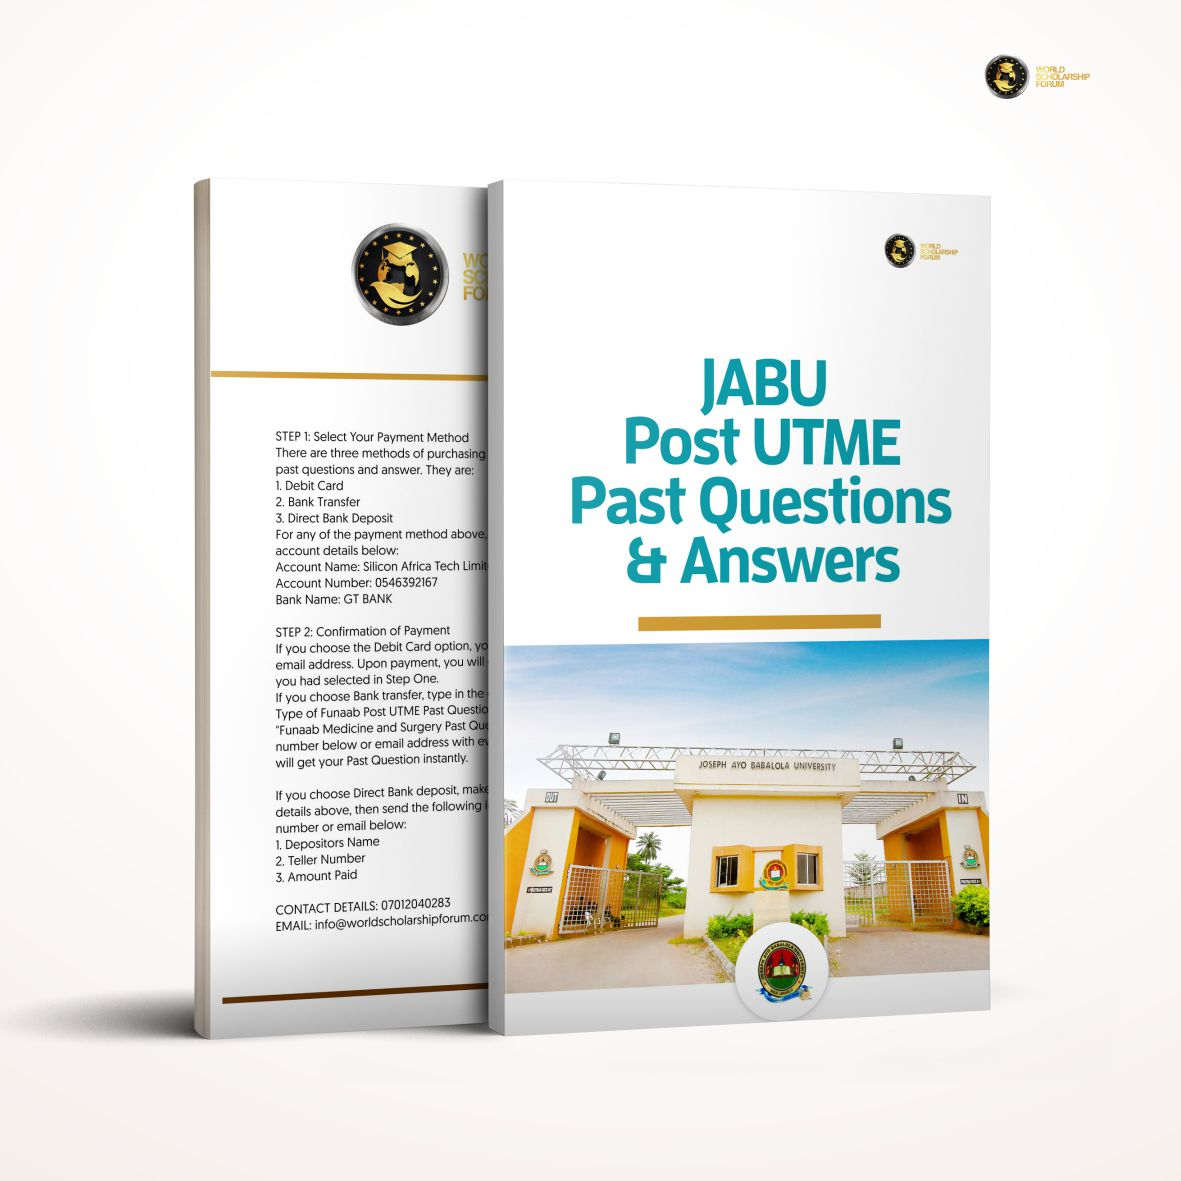 jabu-post-utme-past-questions-answers